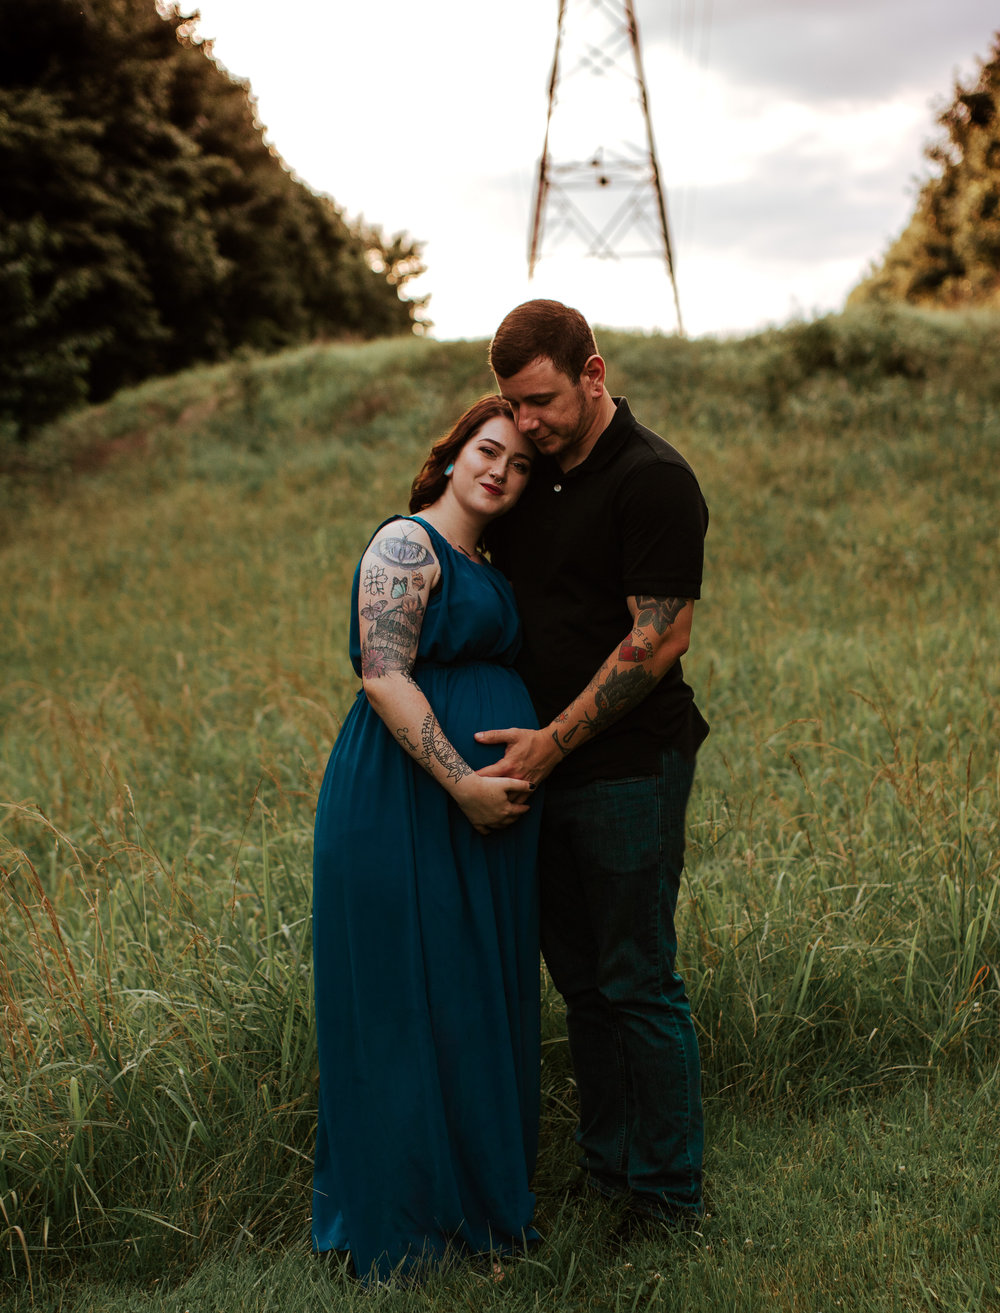 See Gabby & Craig's full session here